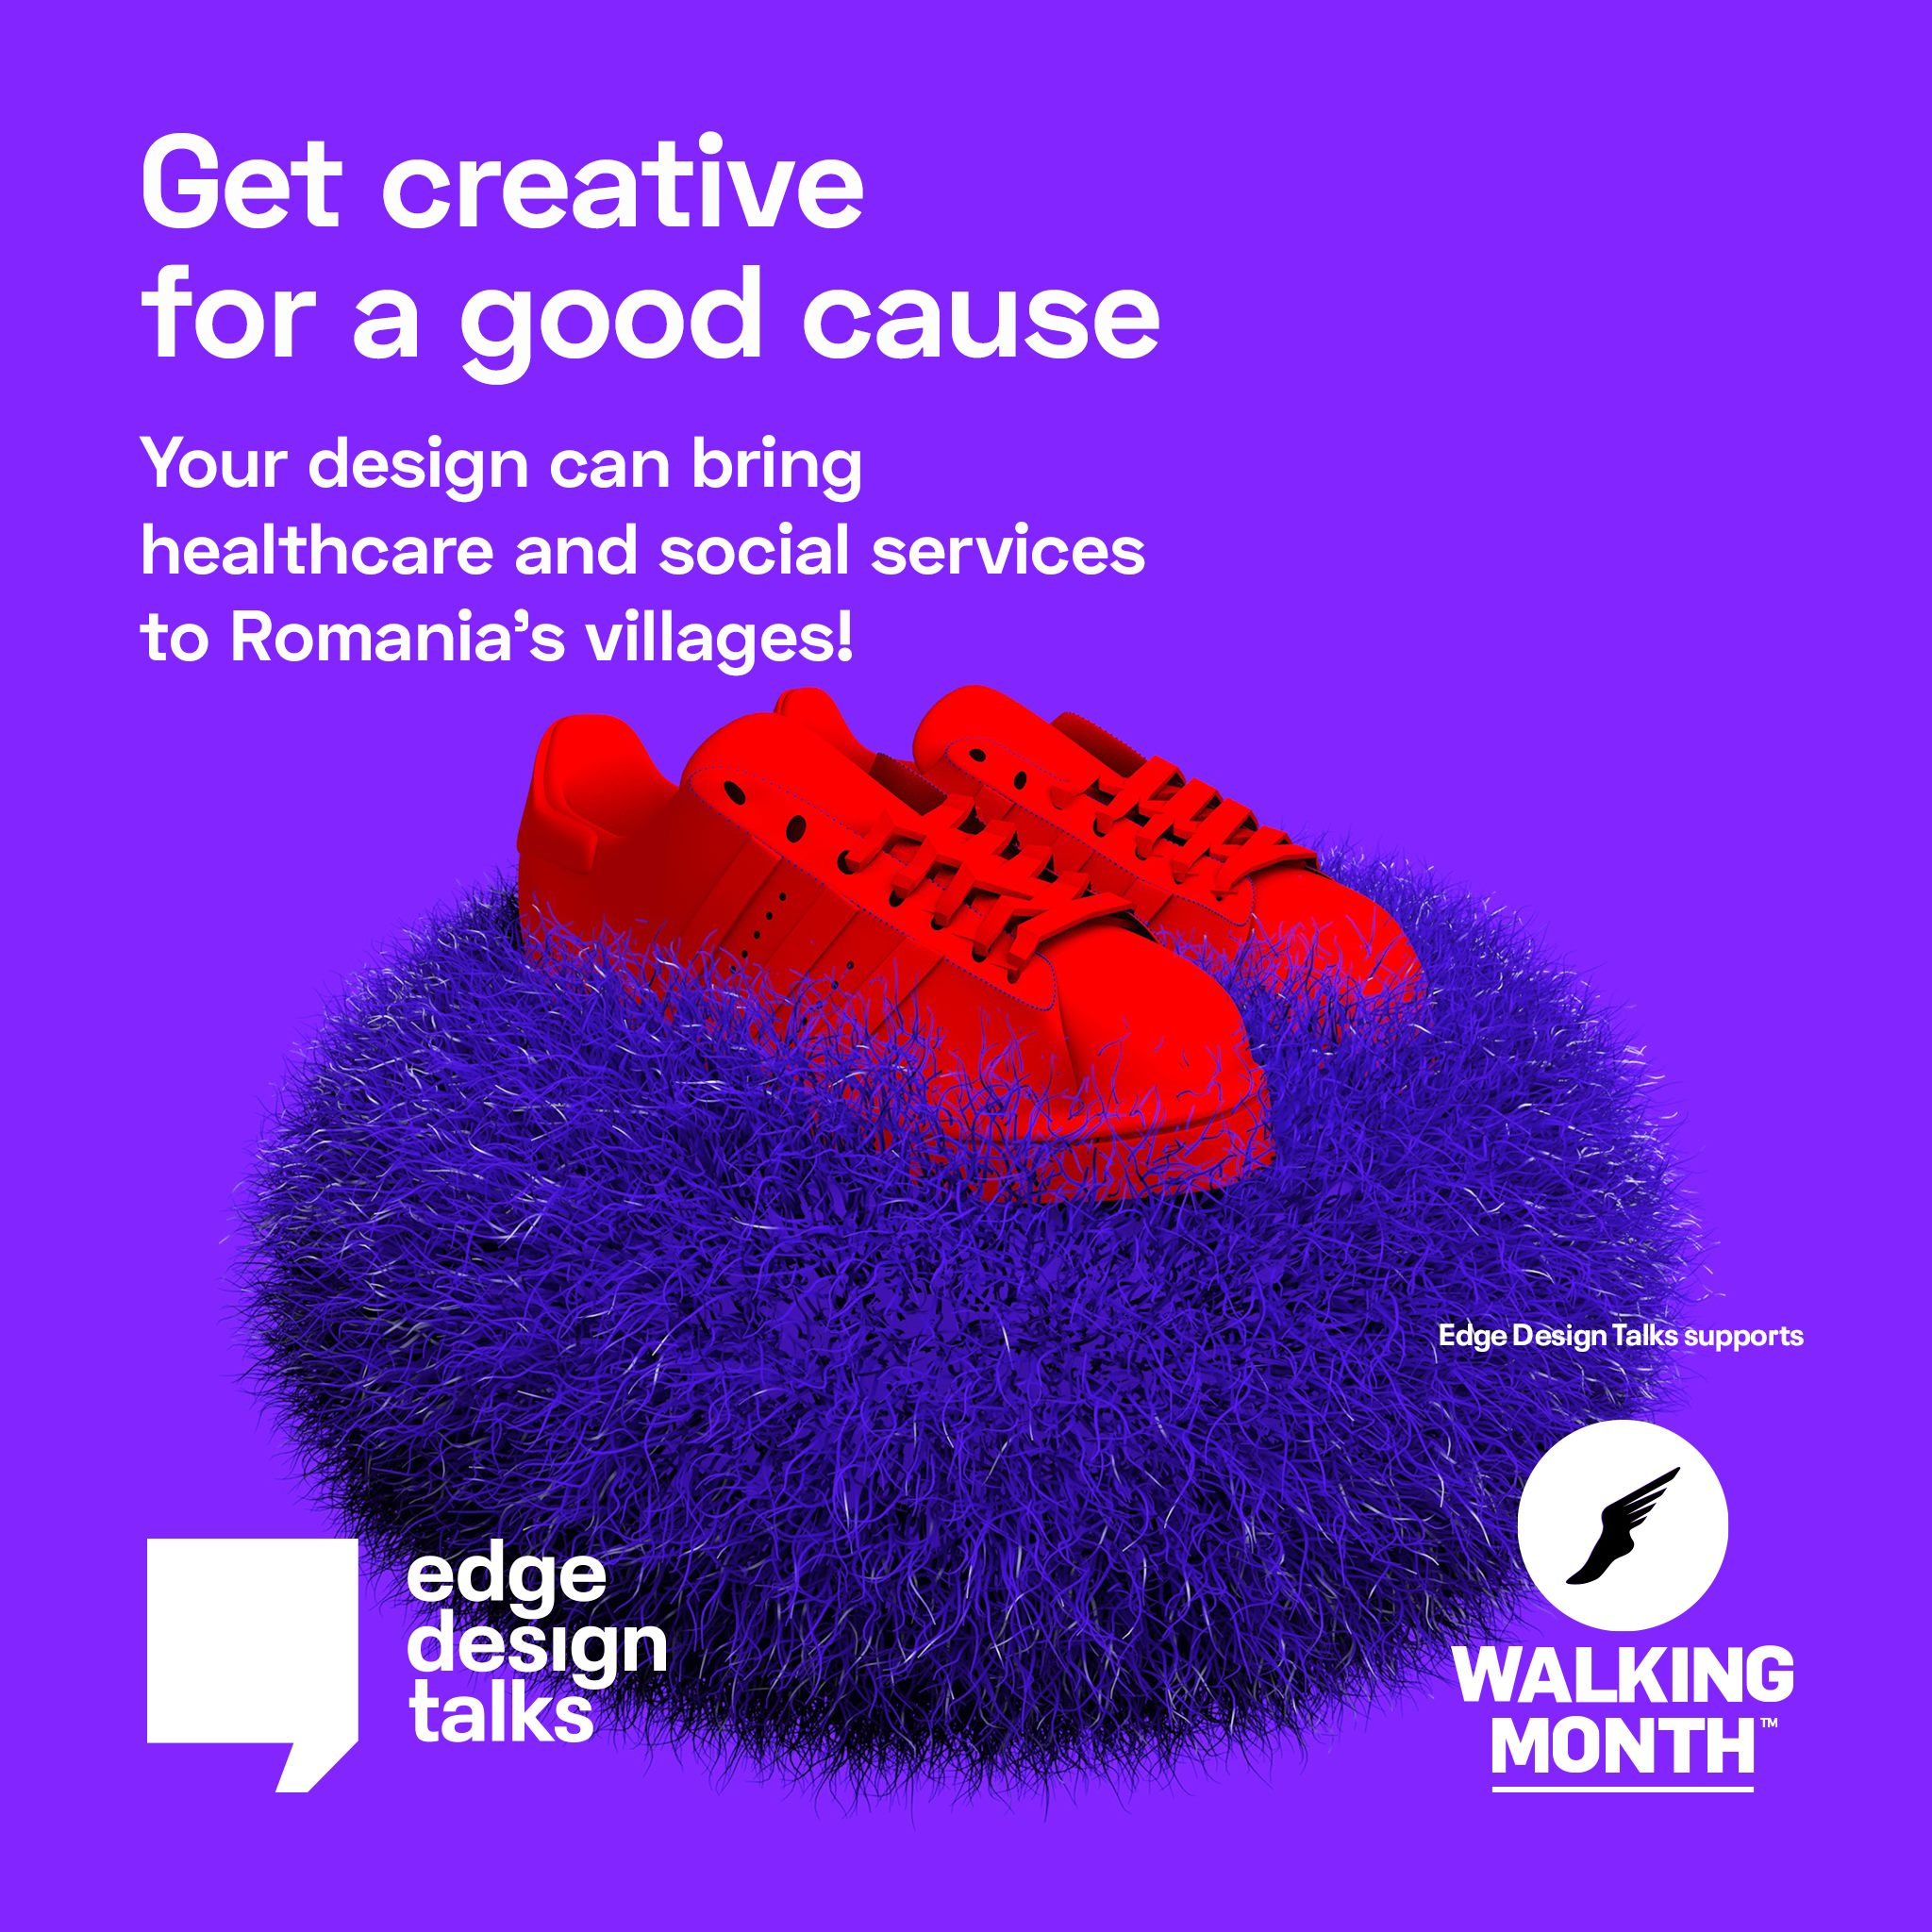 Get creative for a good cause